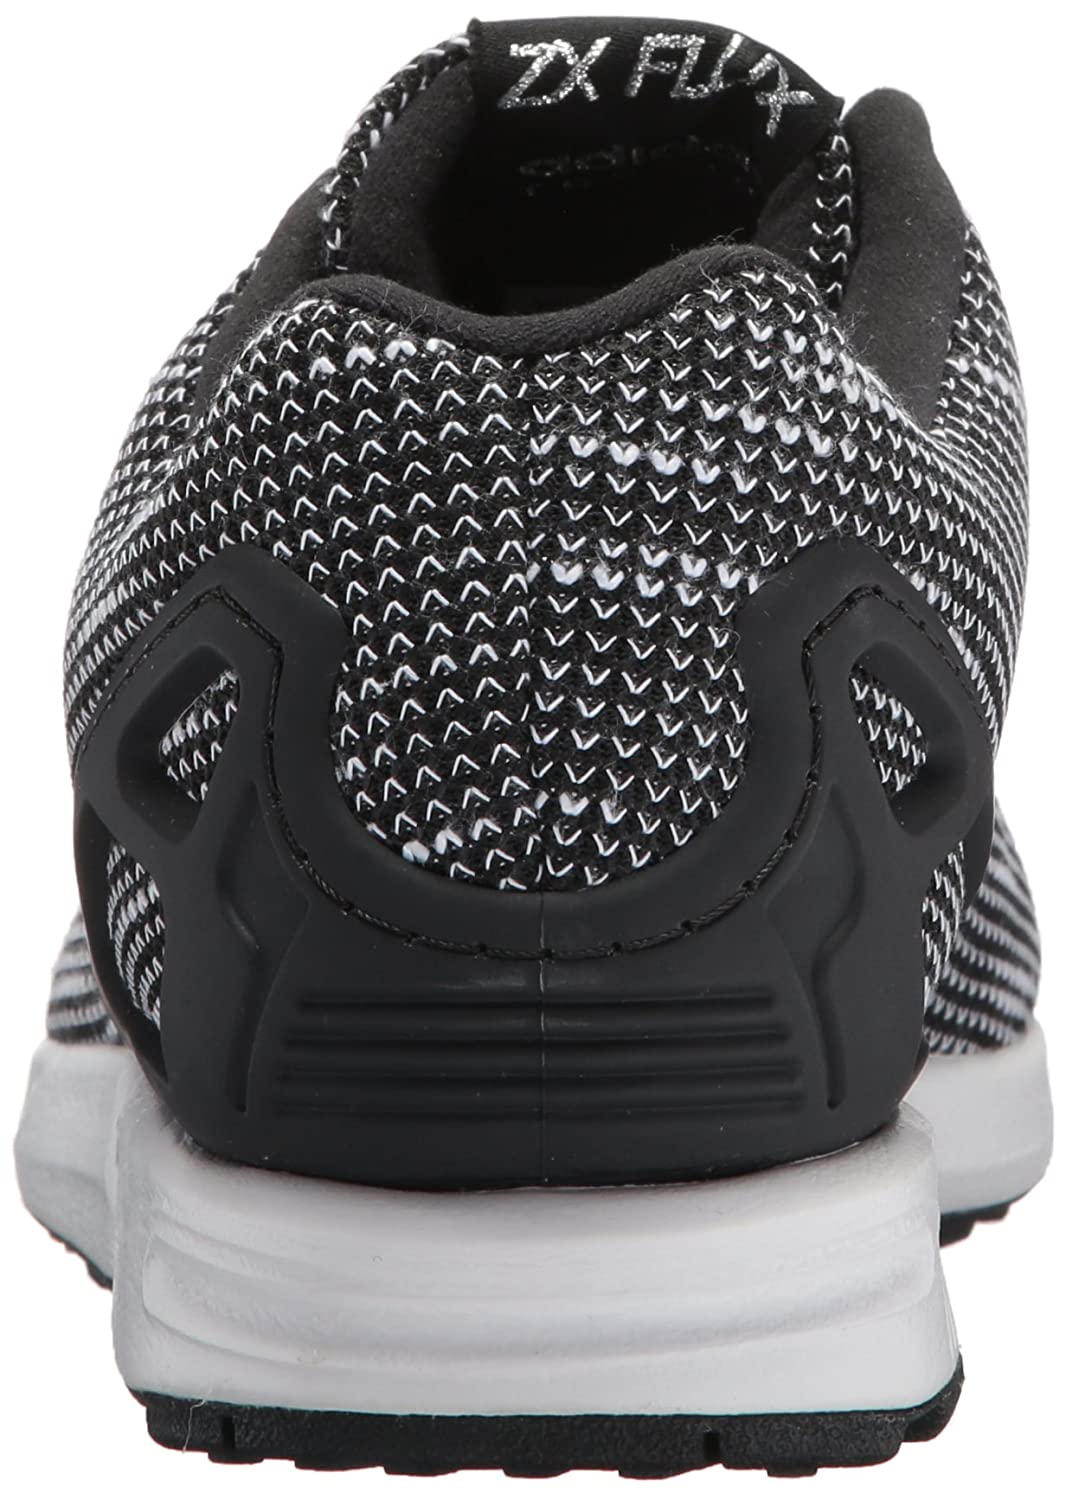 adidas Originals Men's ZX Flux Fashion Sneaker B06XX43G69 4 D(M) US|Black/Black/White